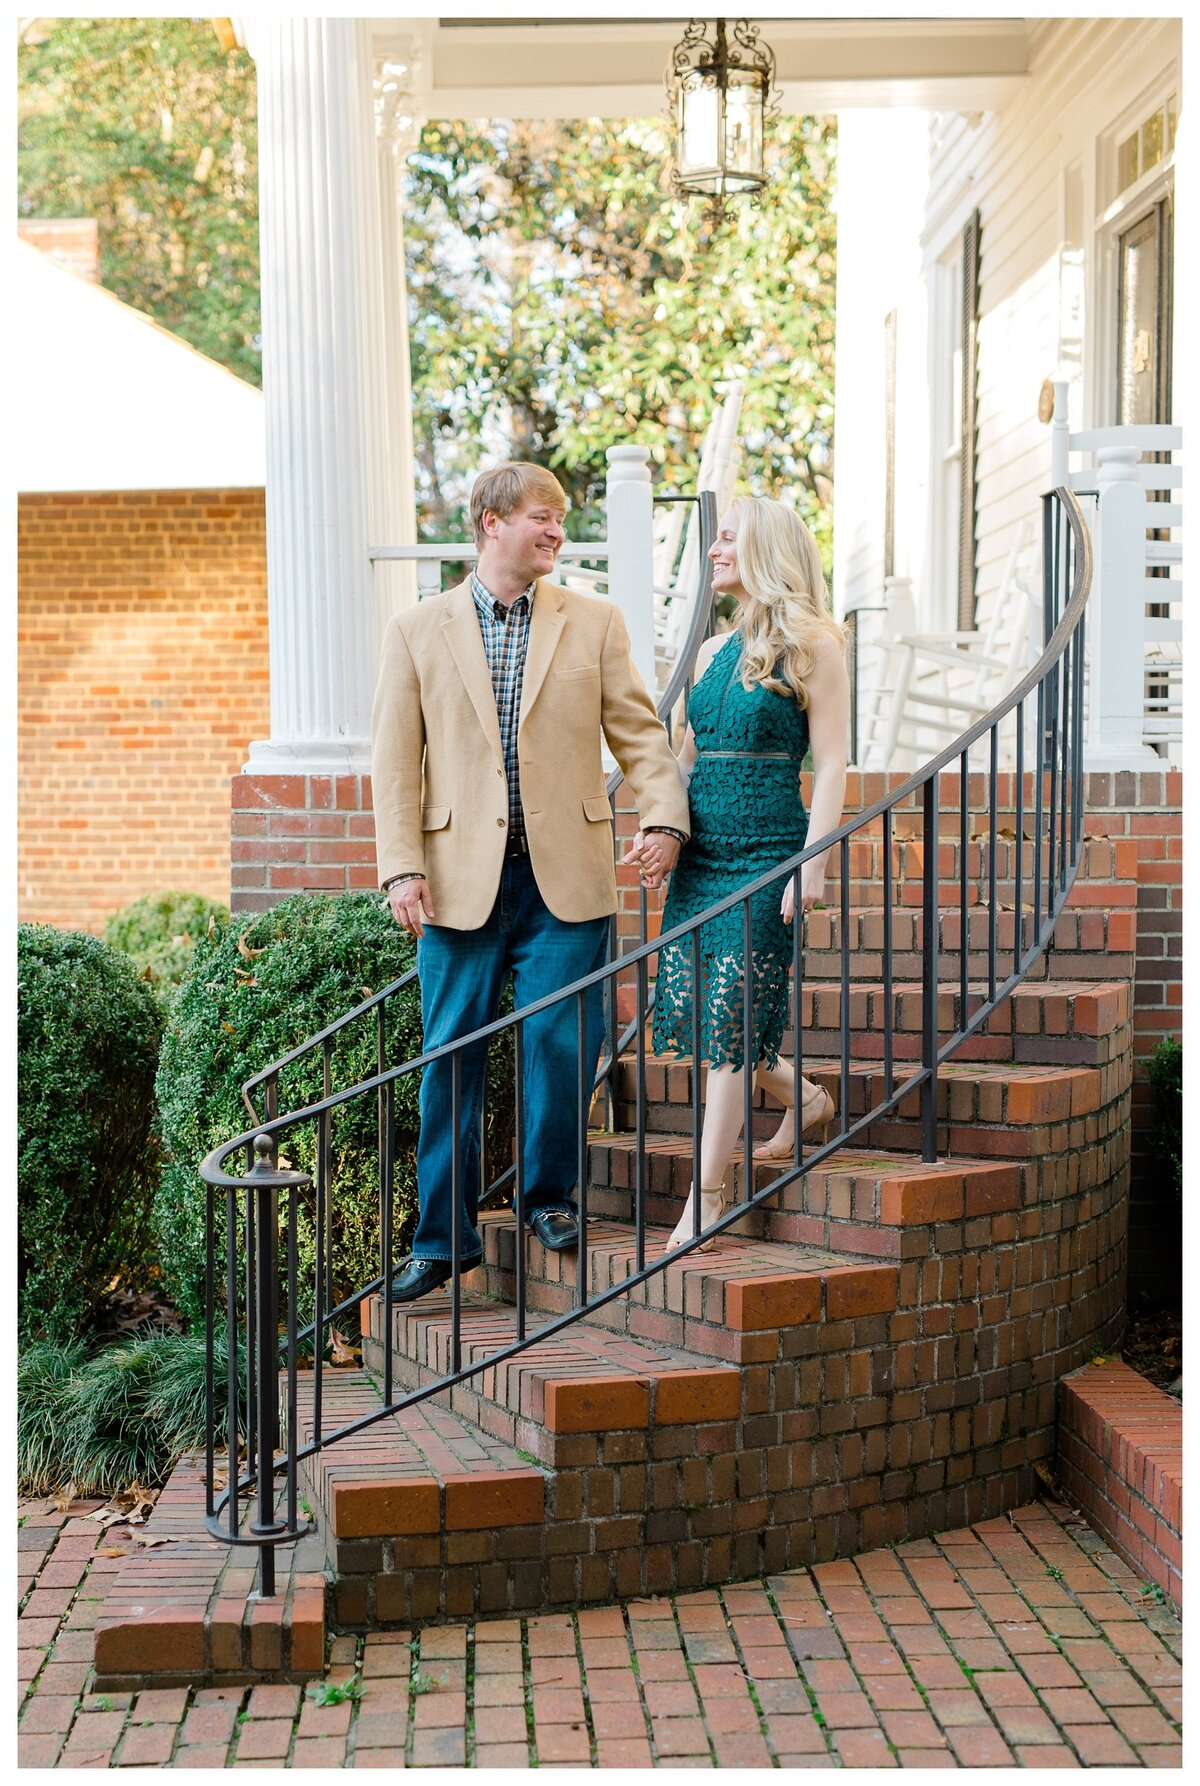 canady-engagements-atlanta-wedding-photographer-17